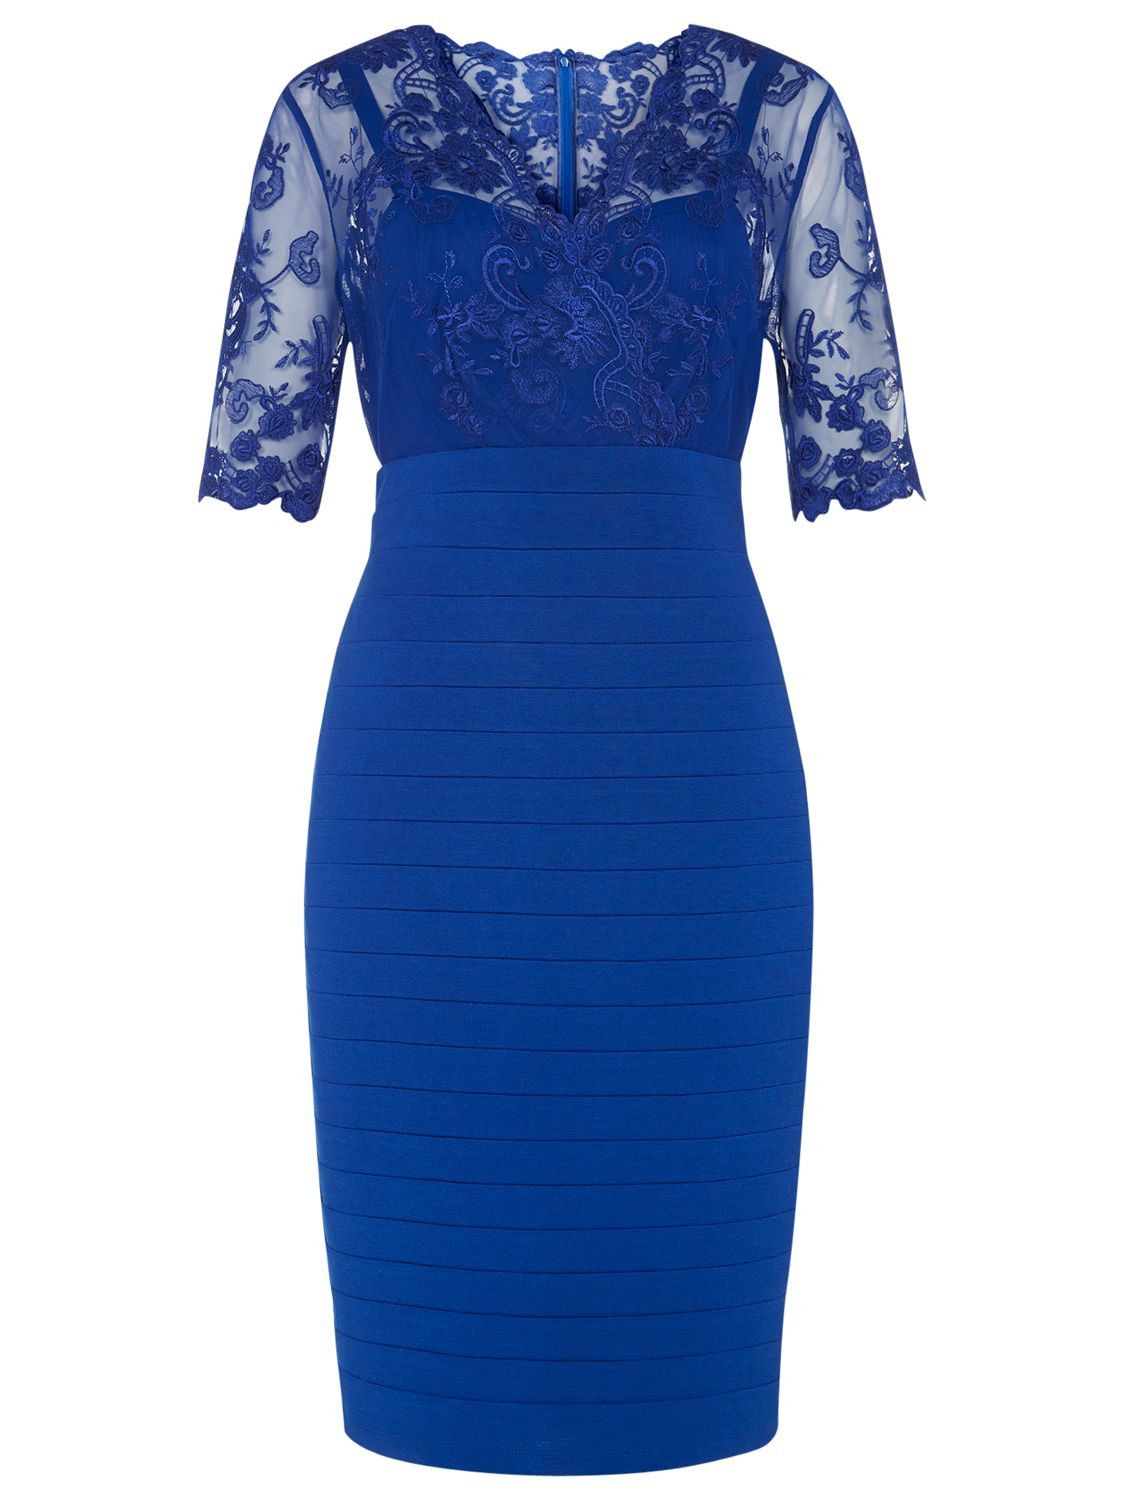 kaliko lace and jersey dress cobalt blue, kaliko, lace, jersey, dress, cobalt, blue, 12|22|18|20|16|10, clearance, womenswear offers, womens dresses offers, special offers, 20% off selected kaliko, women, party outfits, lace dress, inactive womenswear, new reductions, womens dresses, 1627567